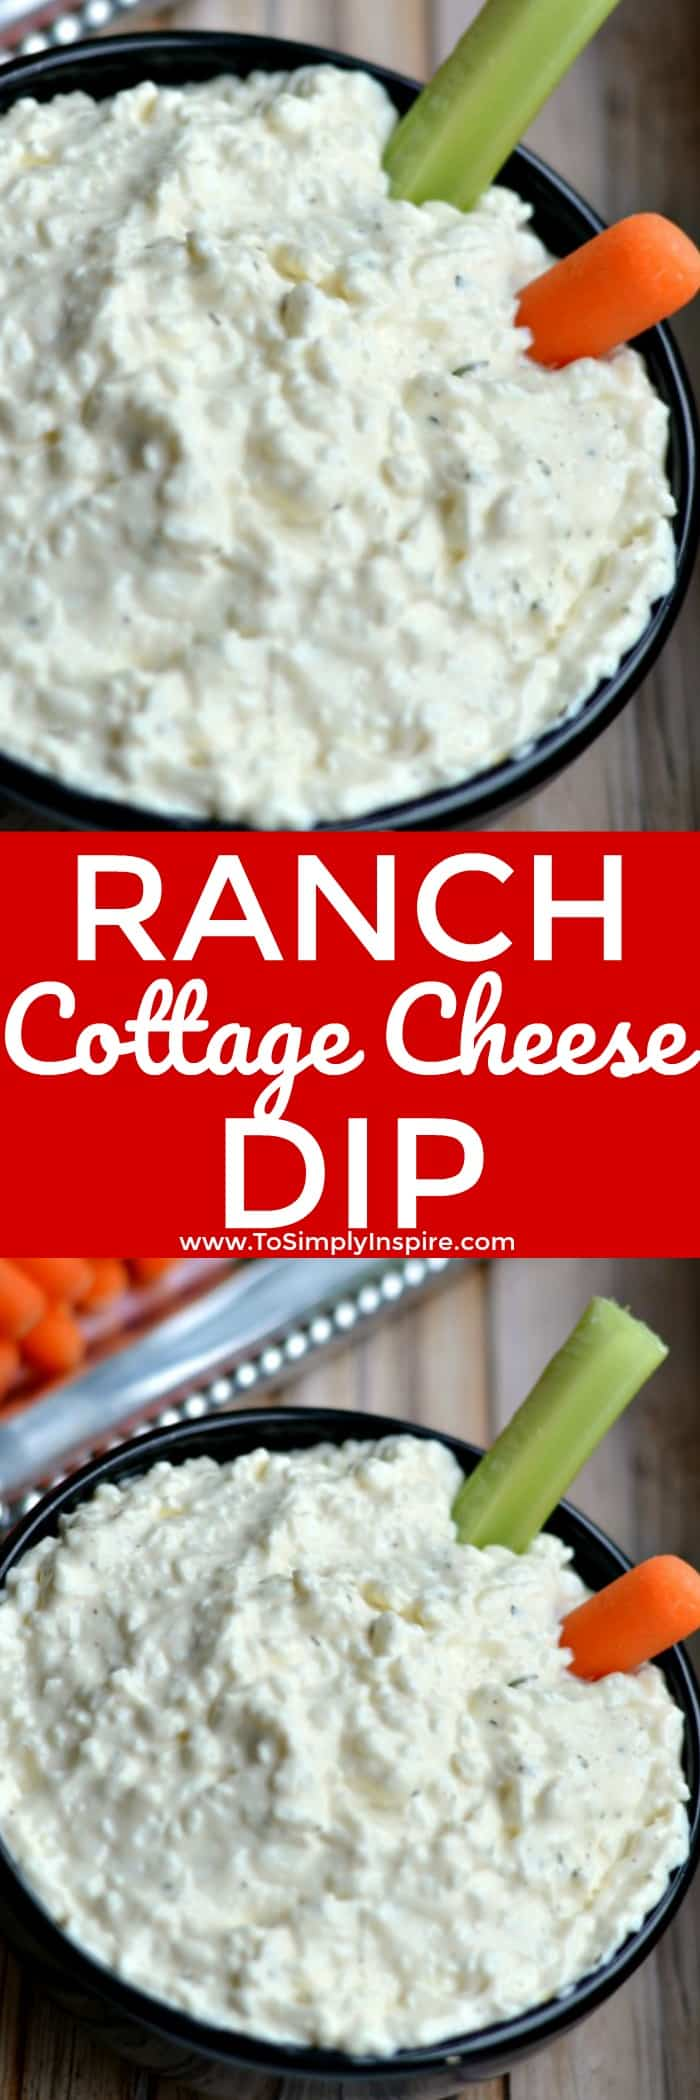 This tasty Ranch Cottage Cheese Dip will quickly become a favorite in your house. With only 3 ingredients, you will love how simple it is to whip up and serve with fresh veggies and crackers.